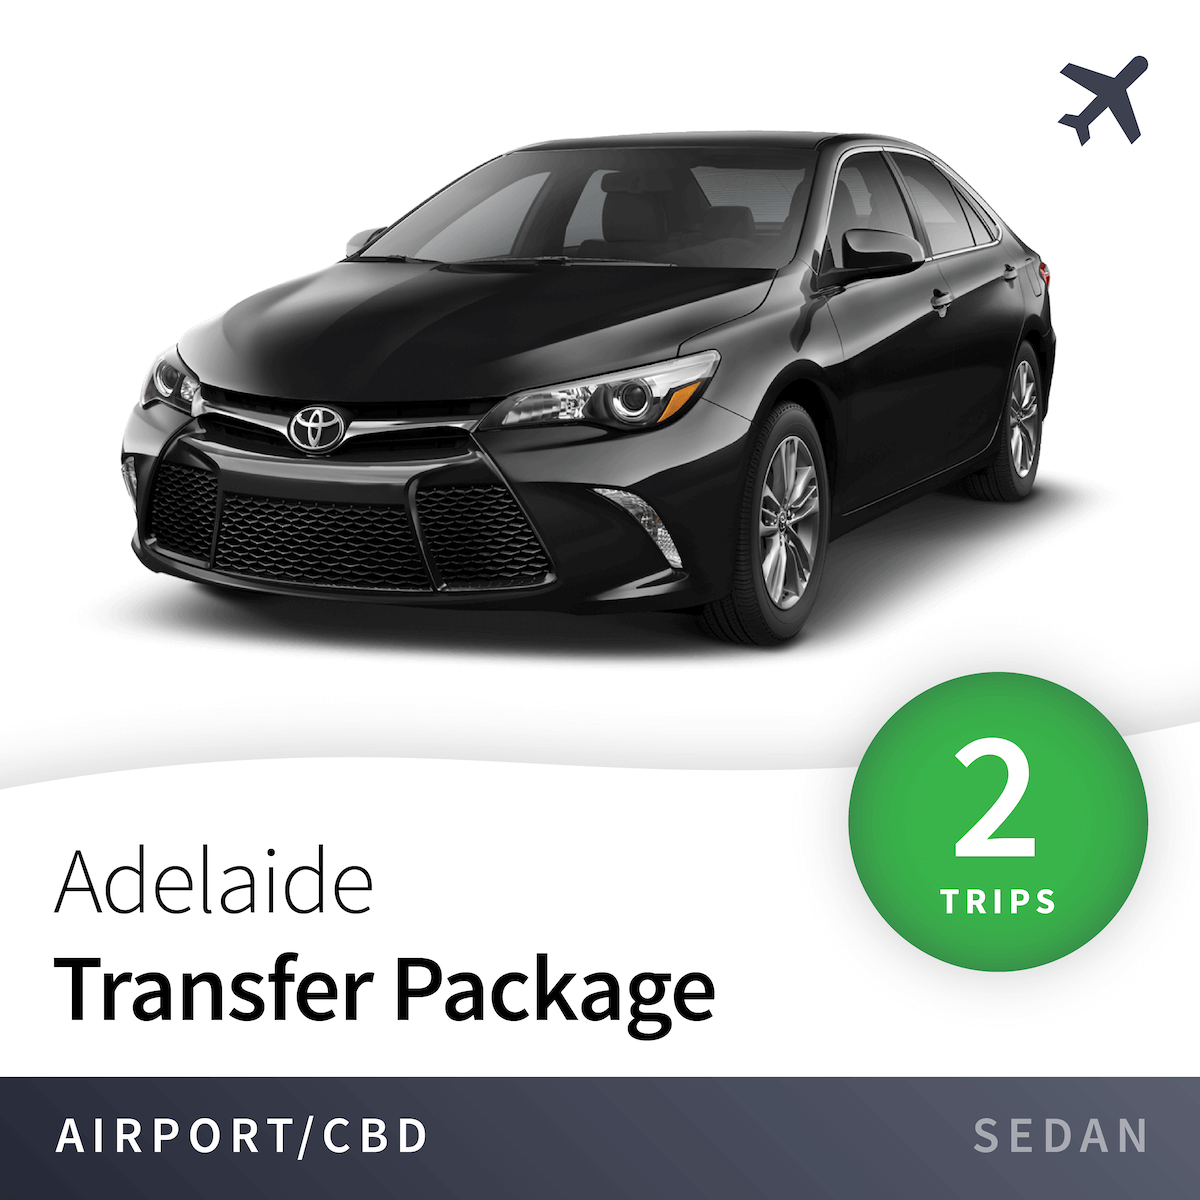 Adelaide Airport Transfer Package - Sedan (2 Trips) 10